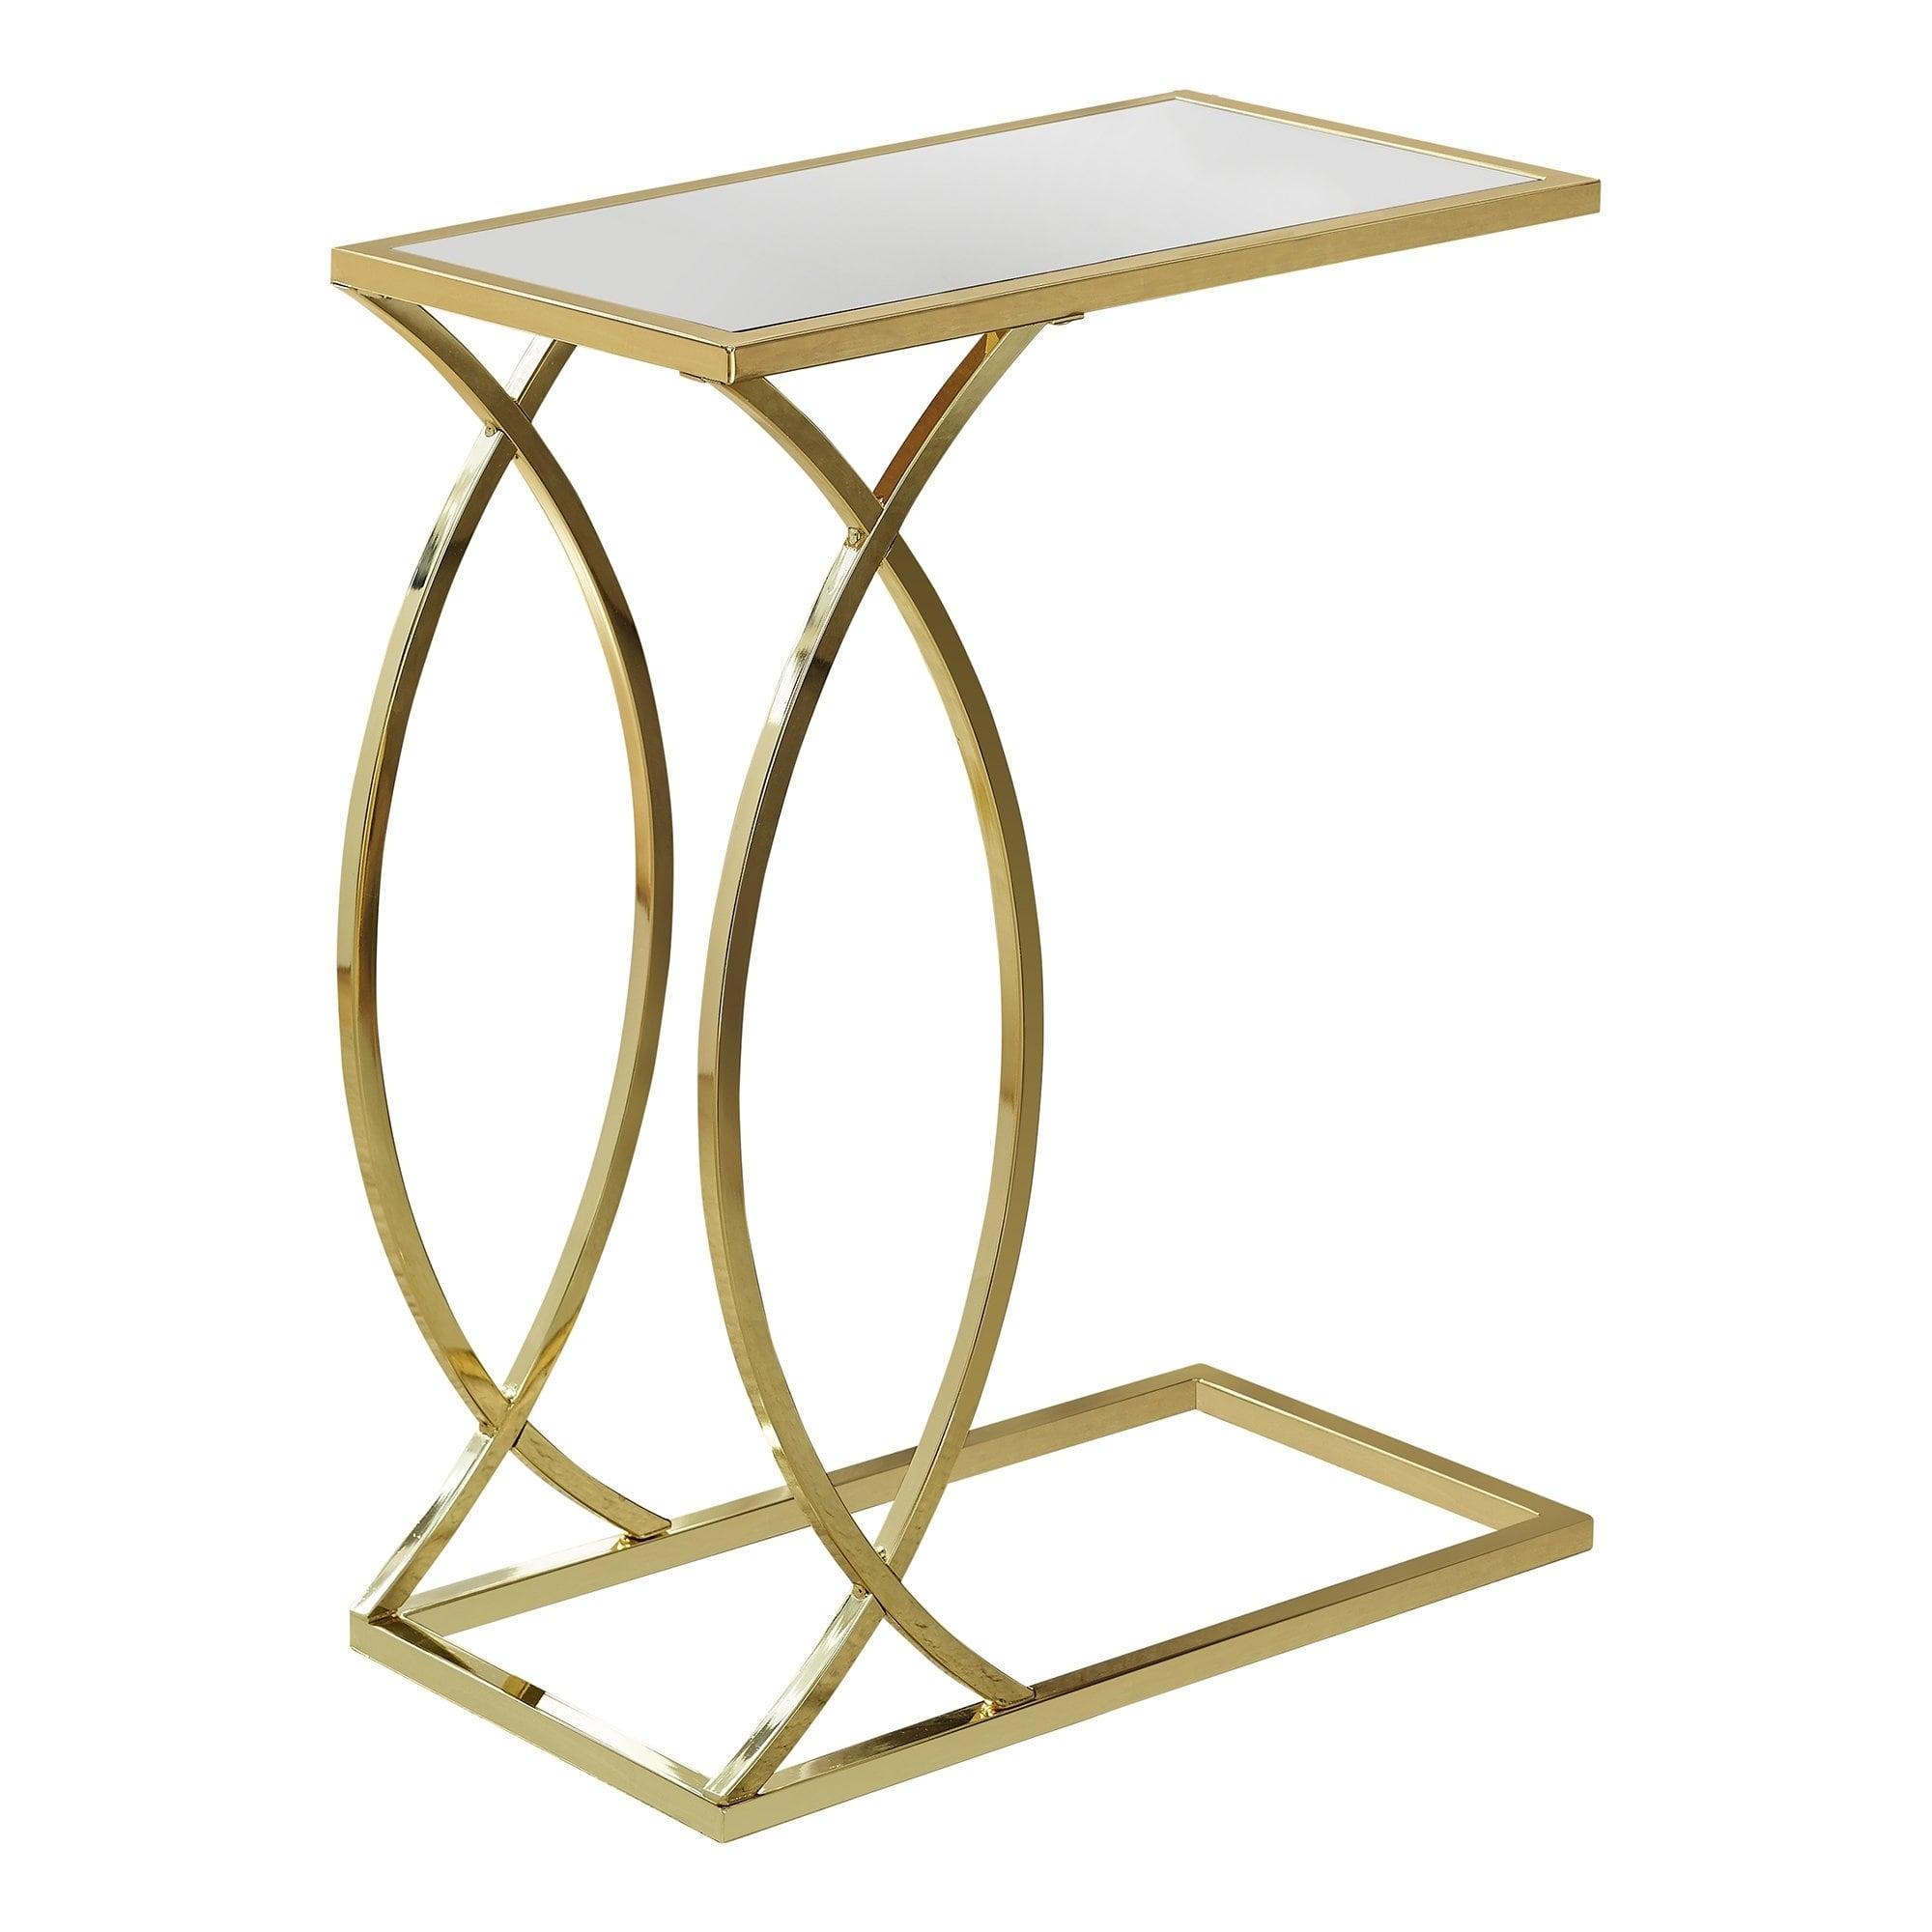 accent table mirror top free shipping today tables with matching mirrors wood dining room furniture contemporary side black piece set carved studded chairs outside benches looking